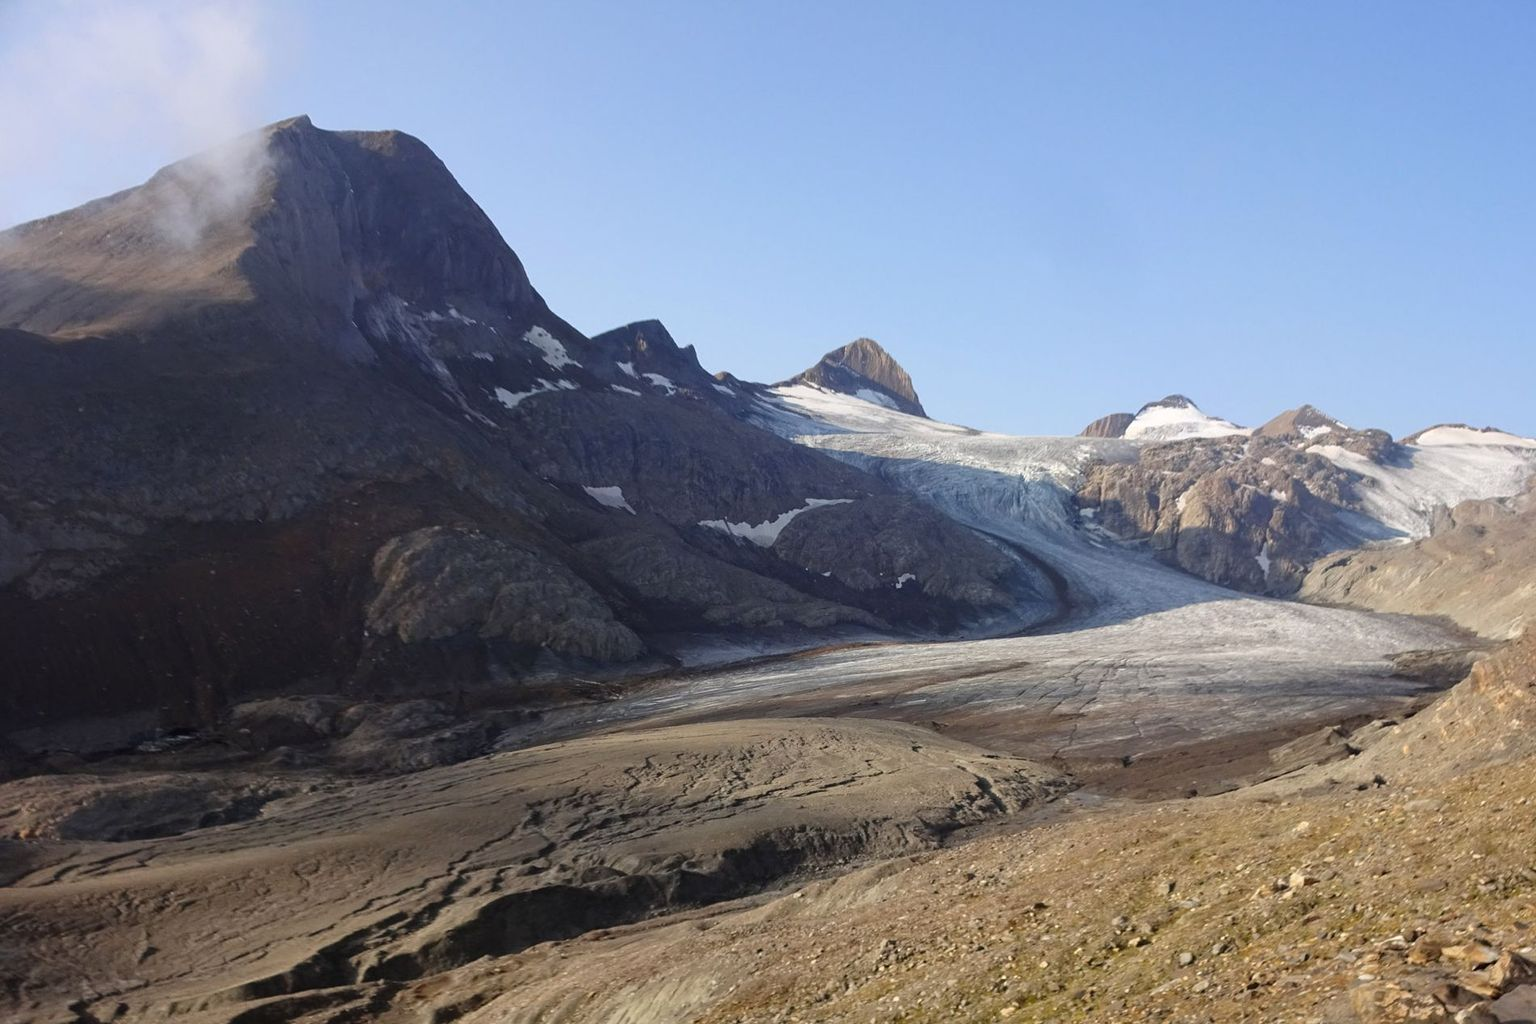 For years, the Gries Glacier (VS) has been losing mass faster than almost any other glacier in Switzerland. Its tongue has become thin and dirty, which further accelerates the melting.